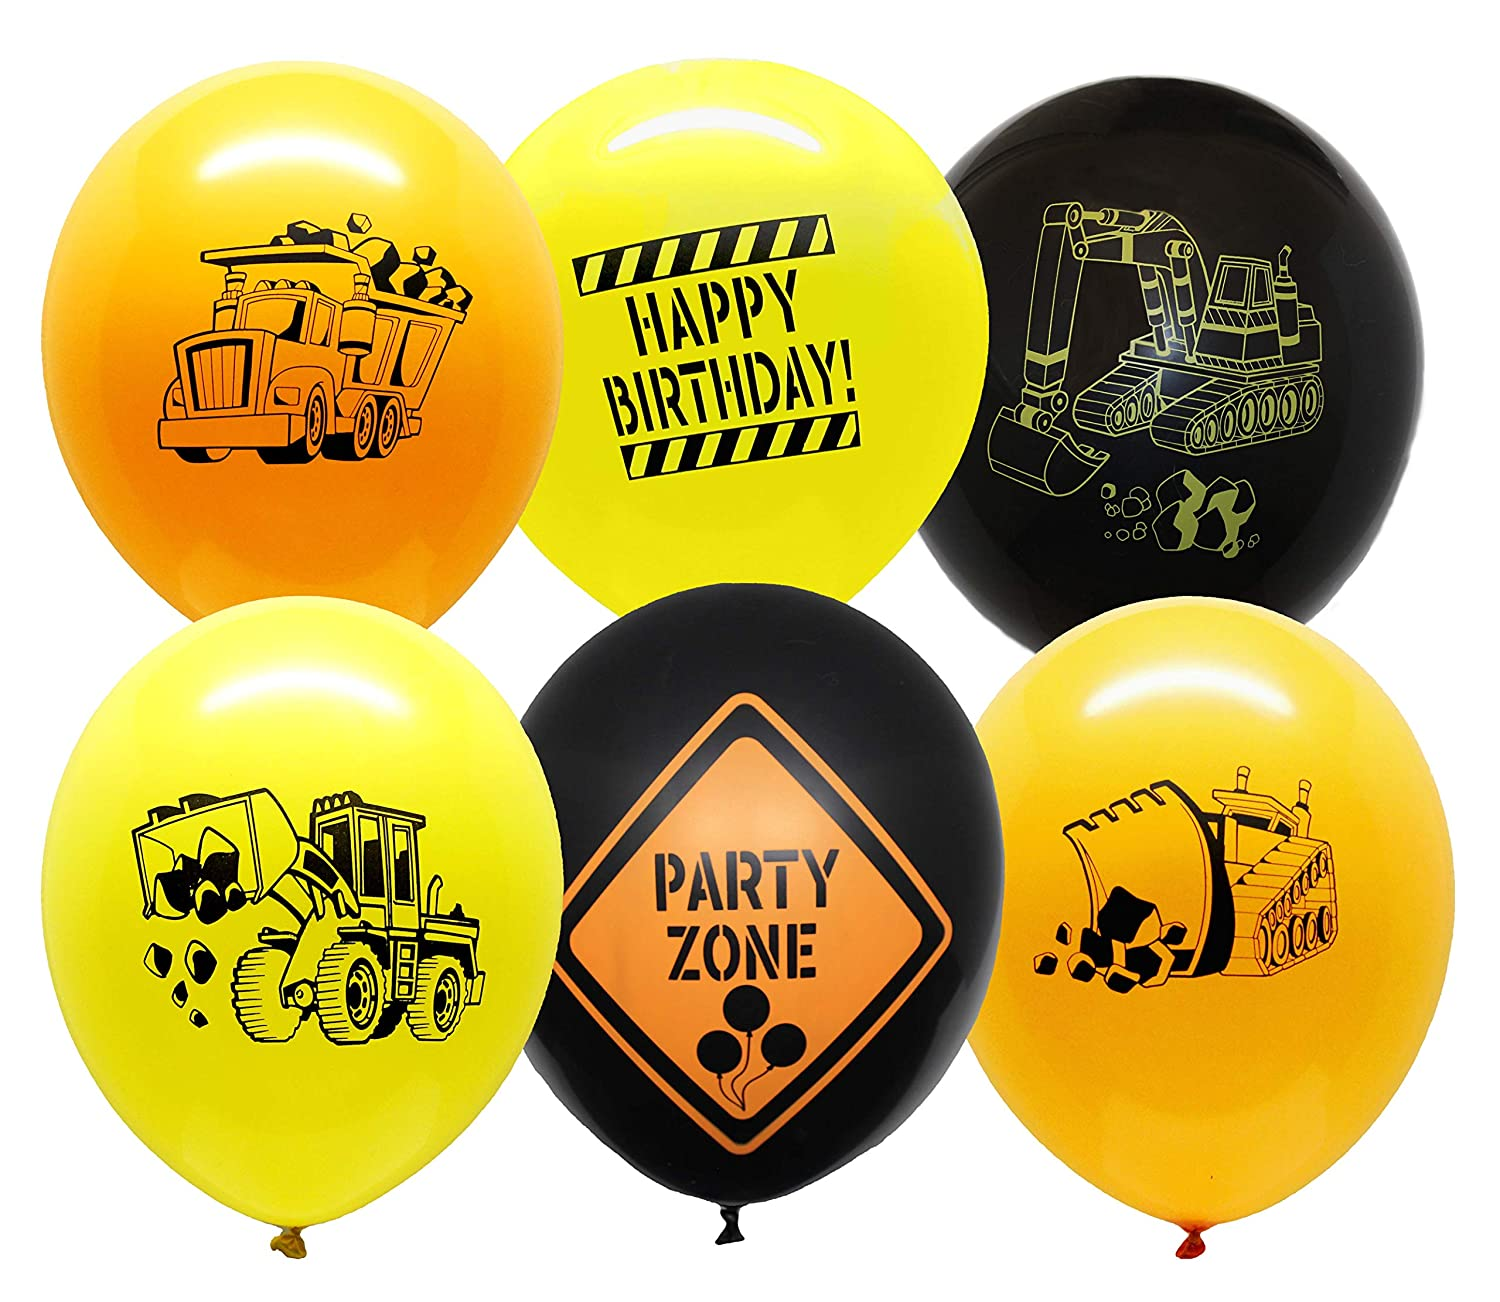 Construction Party Supplies - 30 Construction Themed Balloons - 12 Construction Zone Party Balloons - Perfect for Builder Themed Parties! Jade' s Enterprises